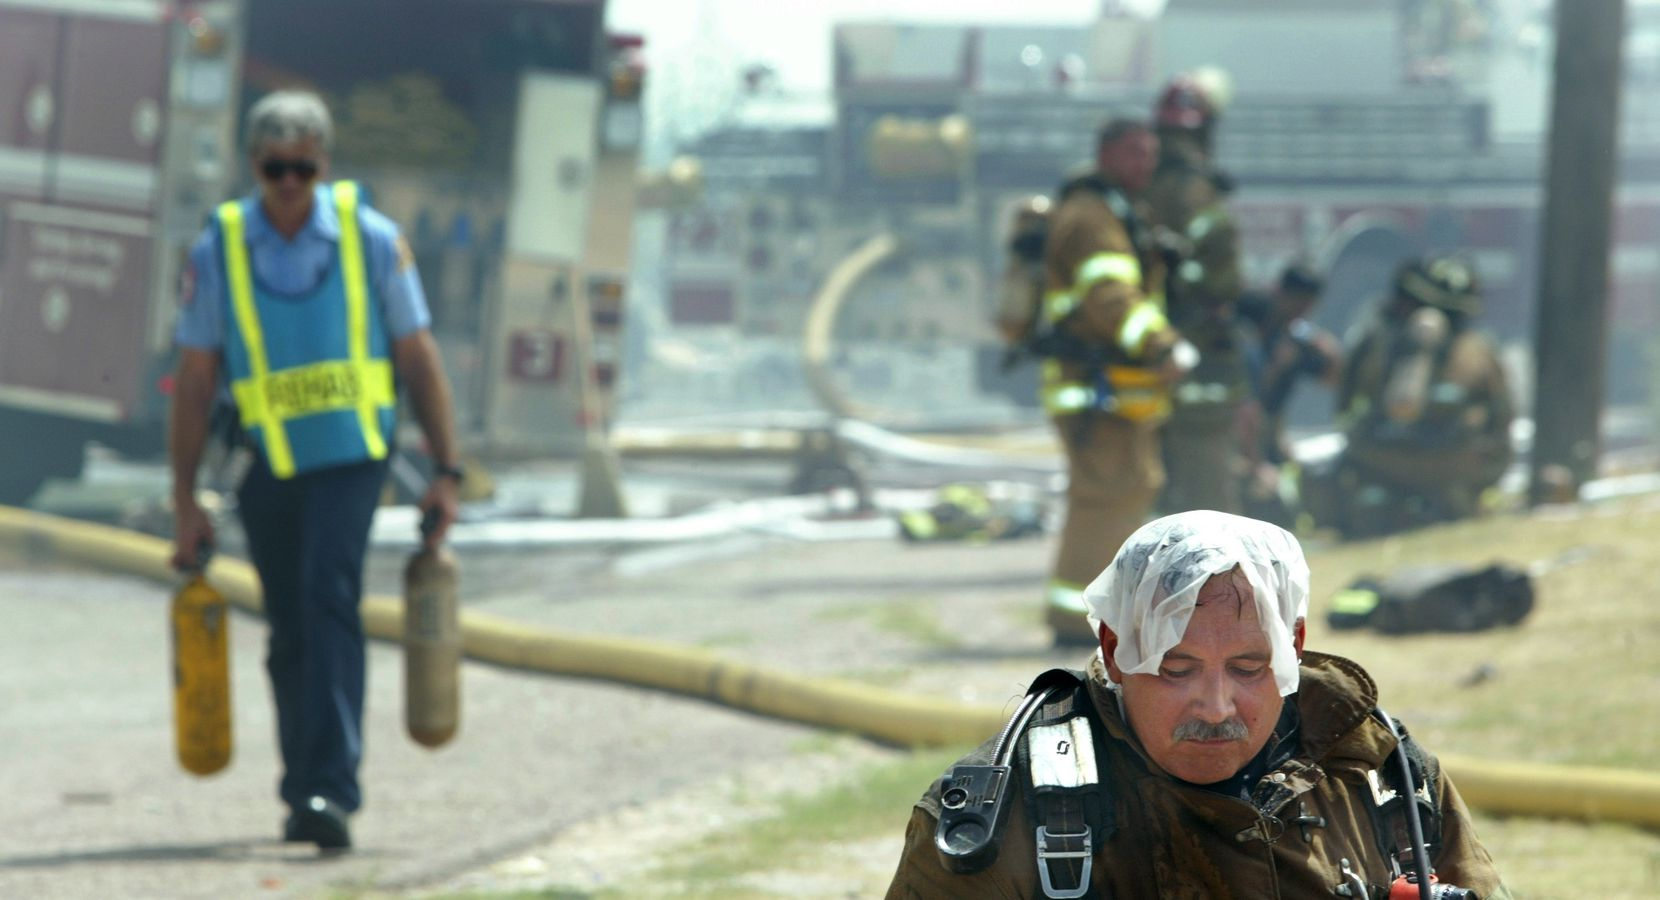 In this 2003 file photo, Michael Dorety took a break while battling a fire in Dallas. He retired from the department in 2010 after fighting fires for 39 years.